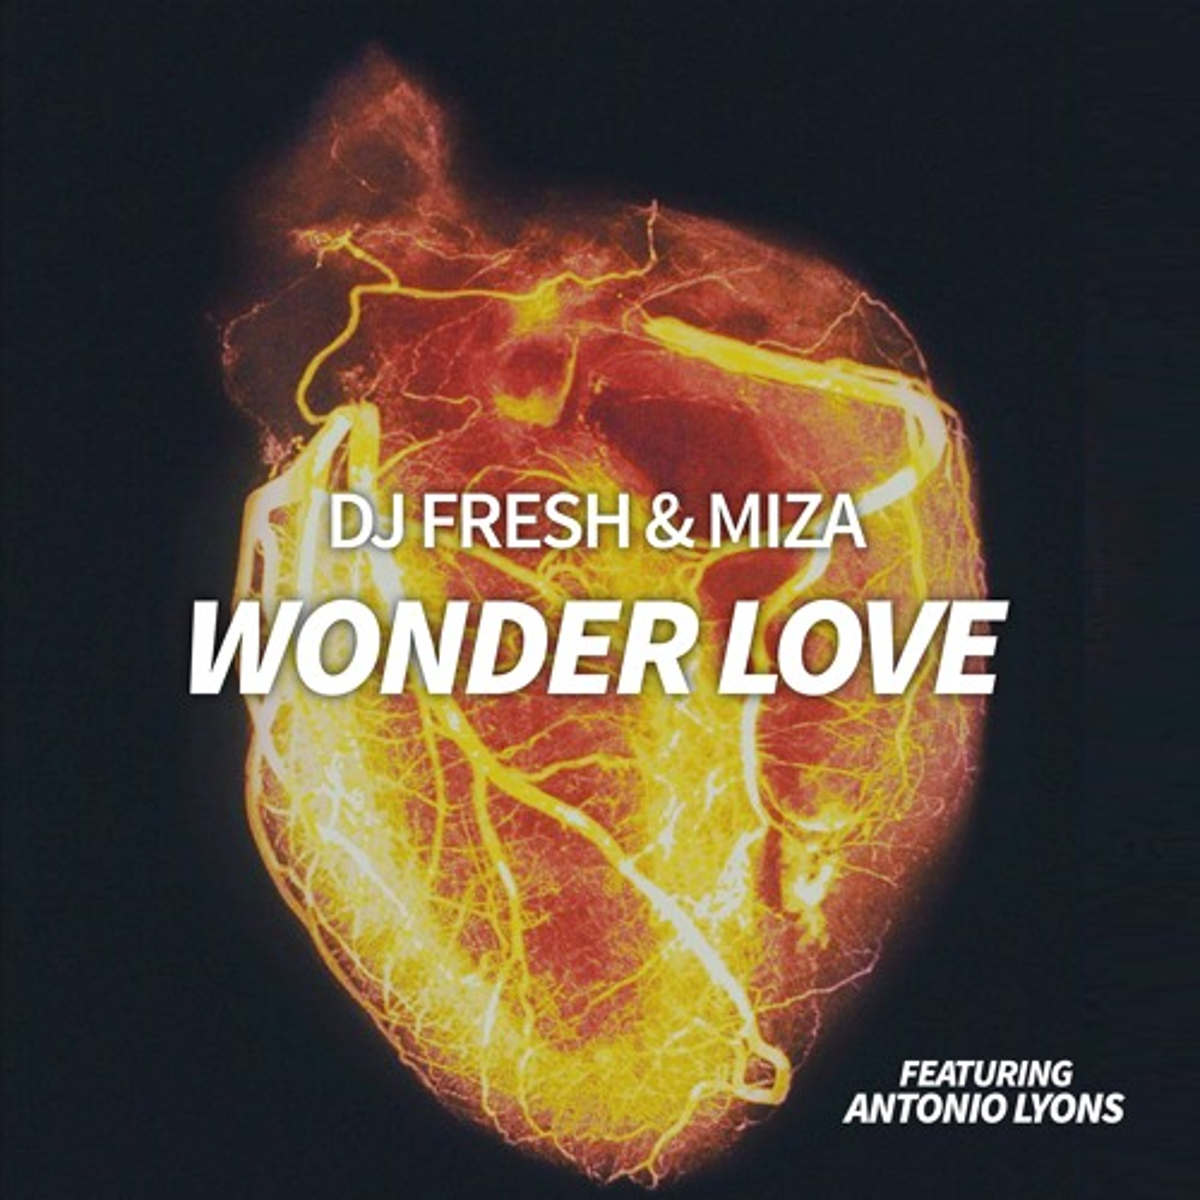 Dj Fresh & Miza - Wonder Love (feat. Antonio Lyons)